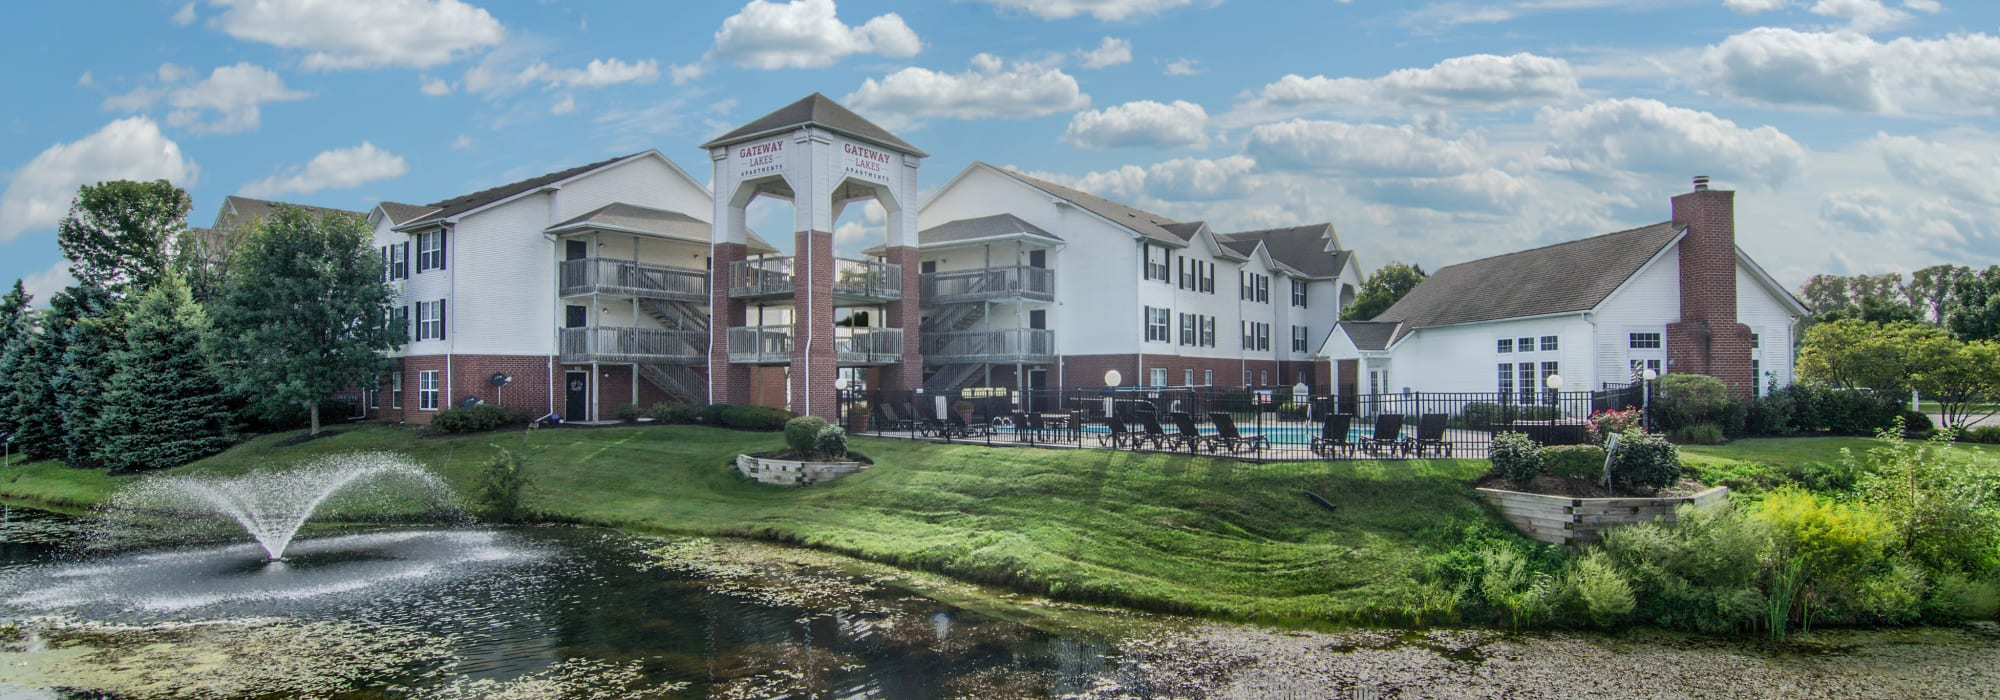 Apartments at Gateway Lakes Apartments in Grove City, Ohio